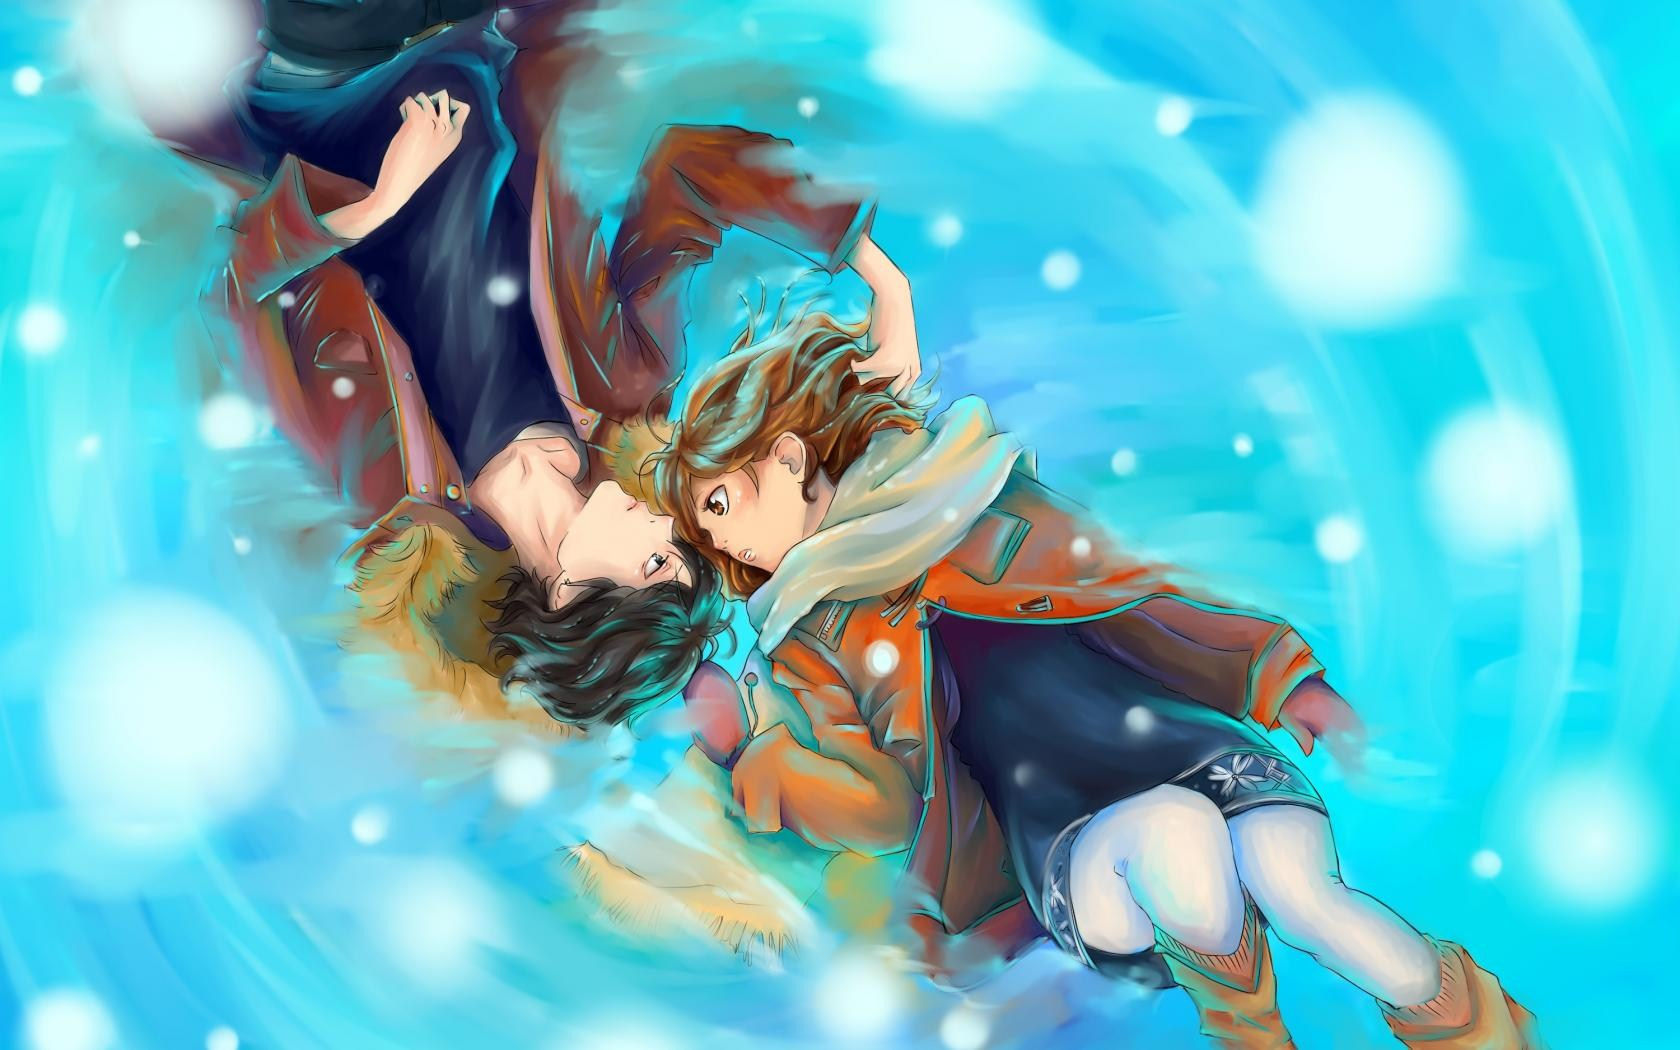 Anime Boy And Girl In Love , HD Wallpaper & Backgrounds